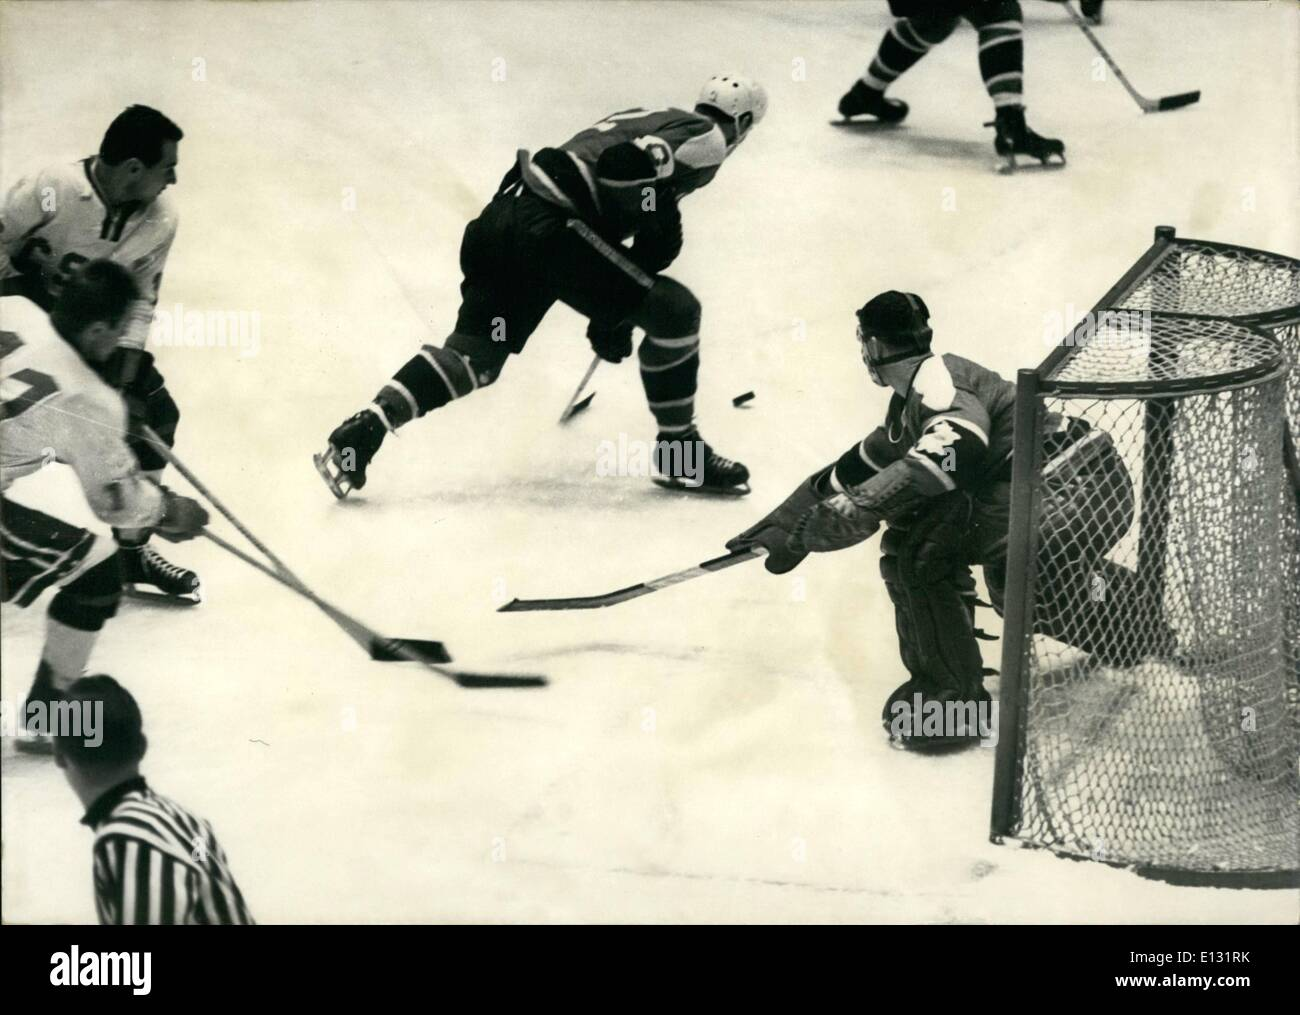 Feb. 26, 2012 - Canada - CSSR. Ice Hockey - match Olympic Games 1964 in Innsbruck/Austria - Stock Image